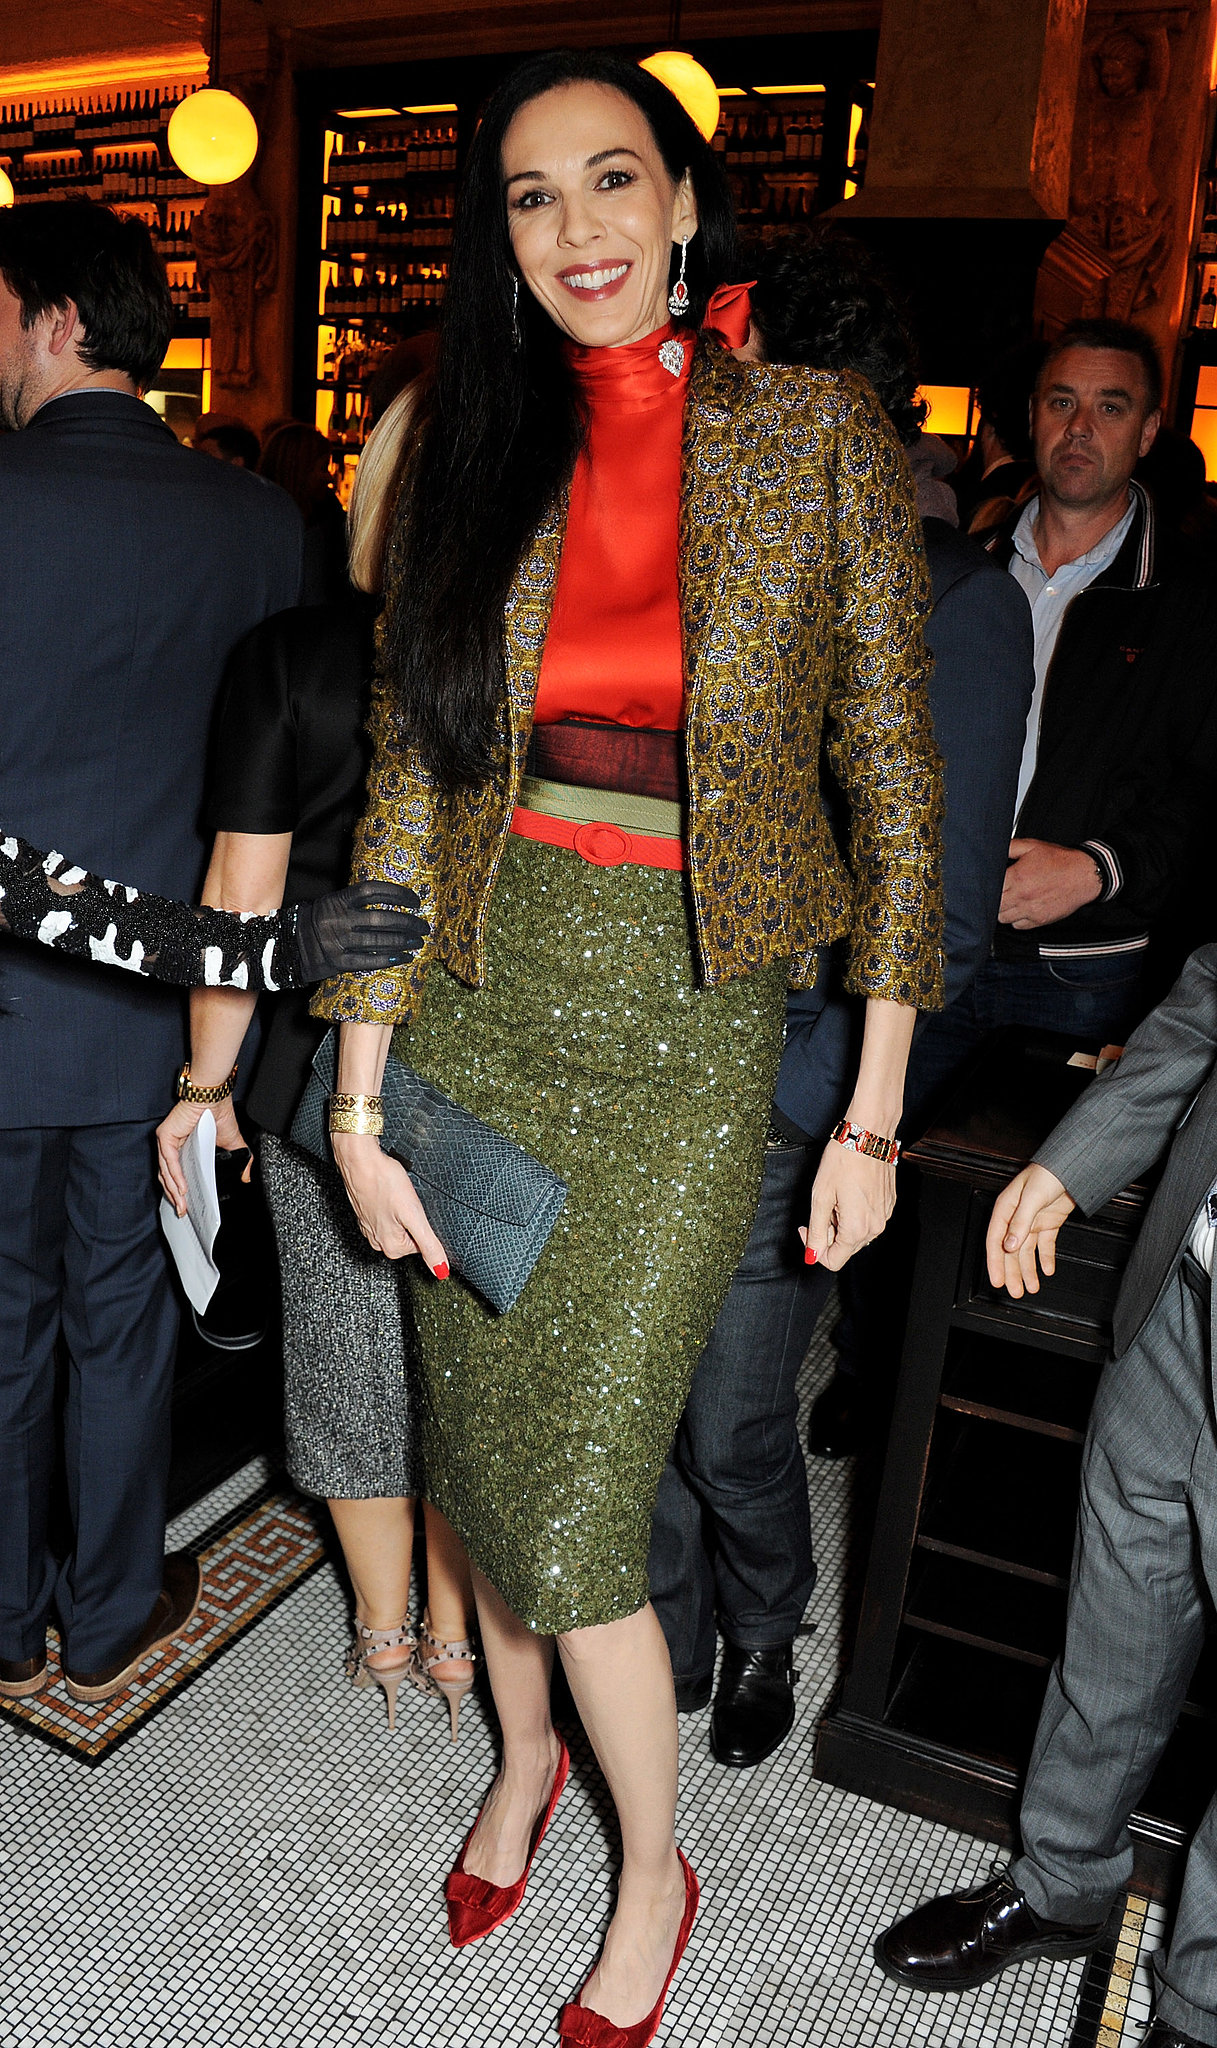 L'Wren Scott was all legs in her chic pencil skirt while dining with British Vogue.